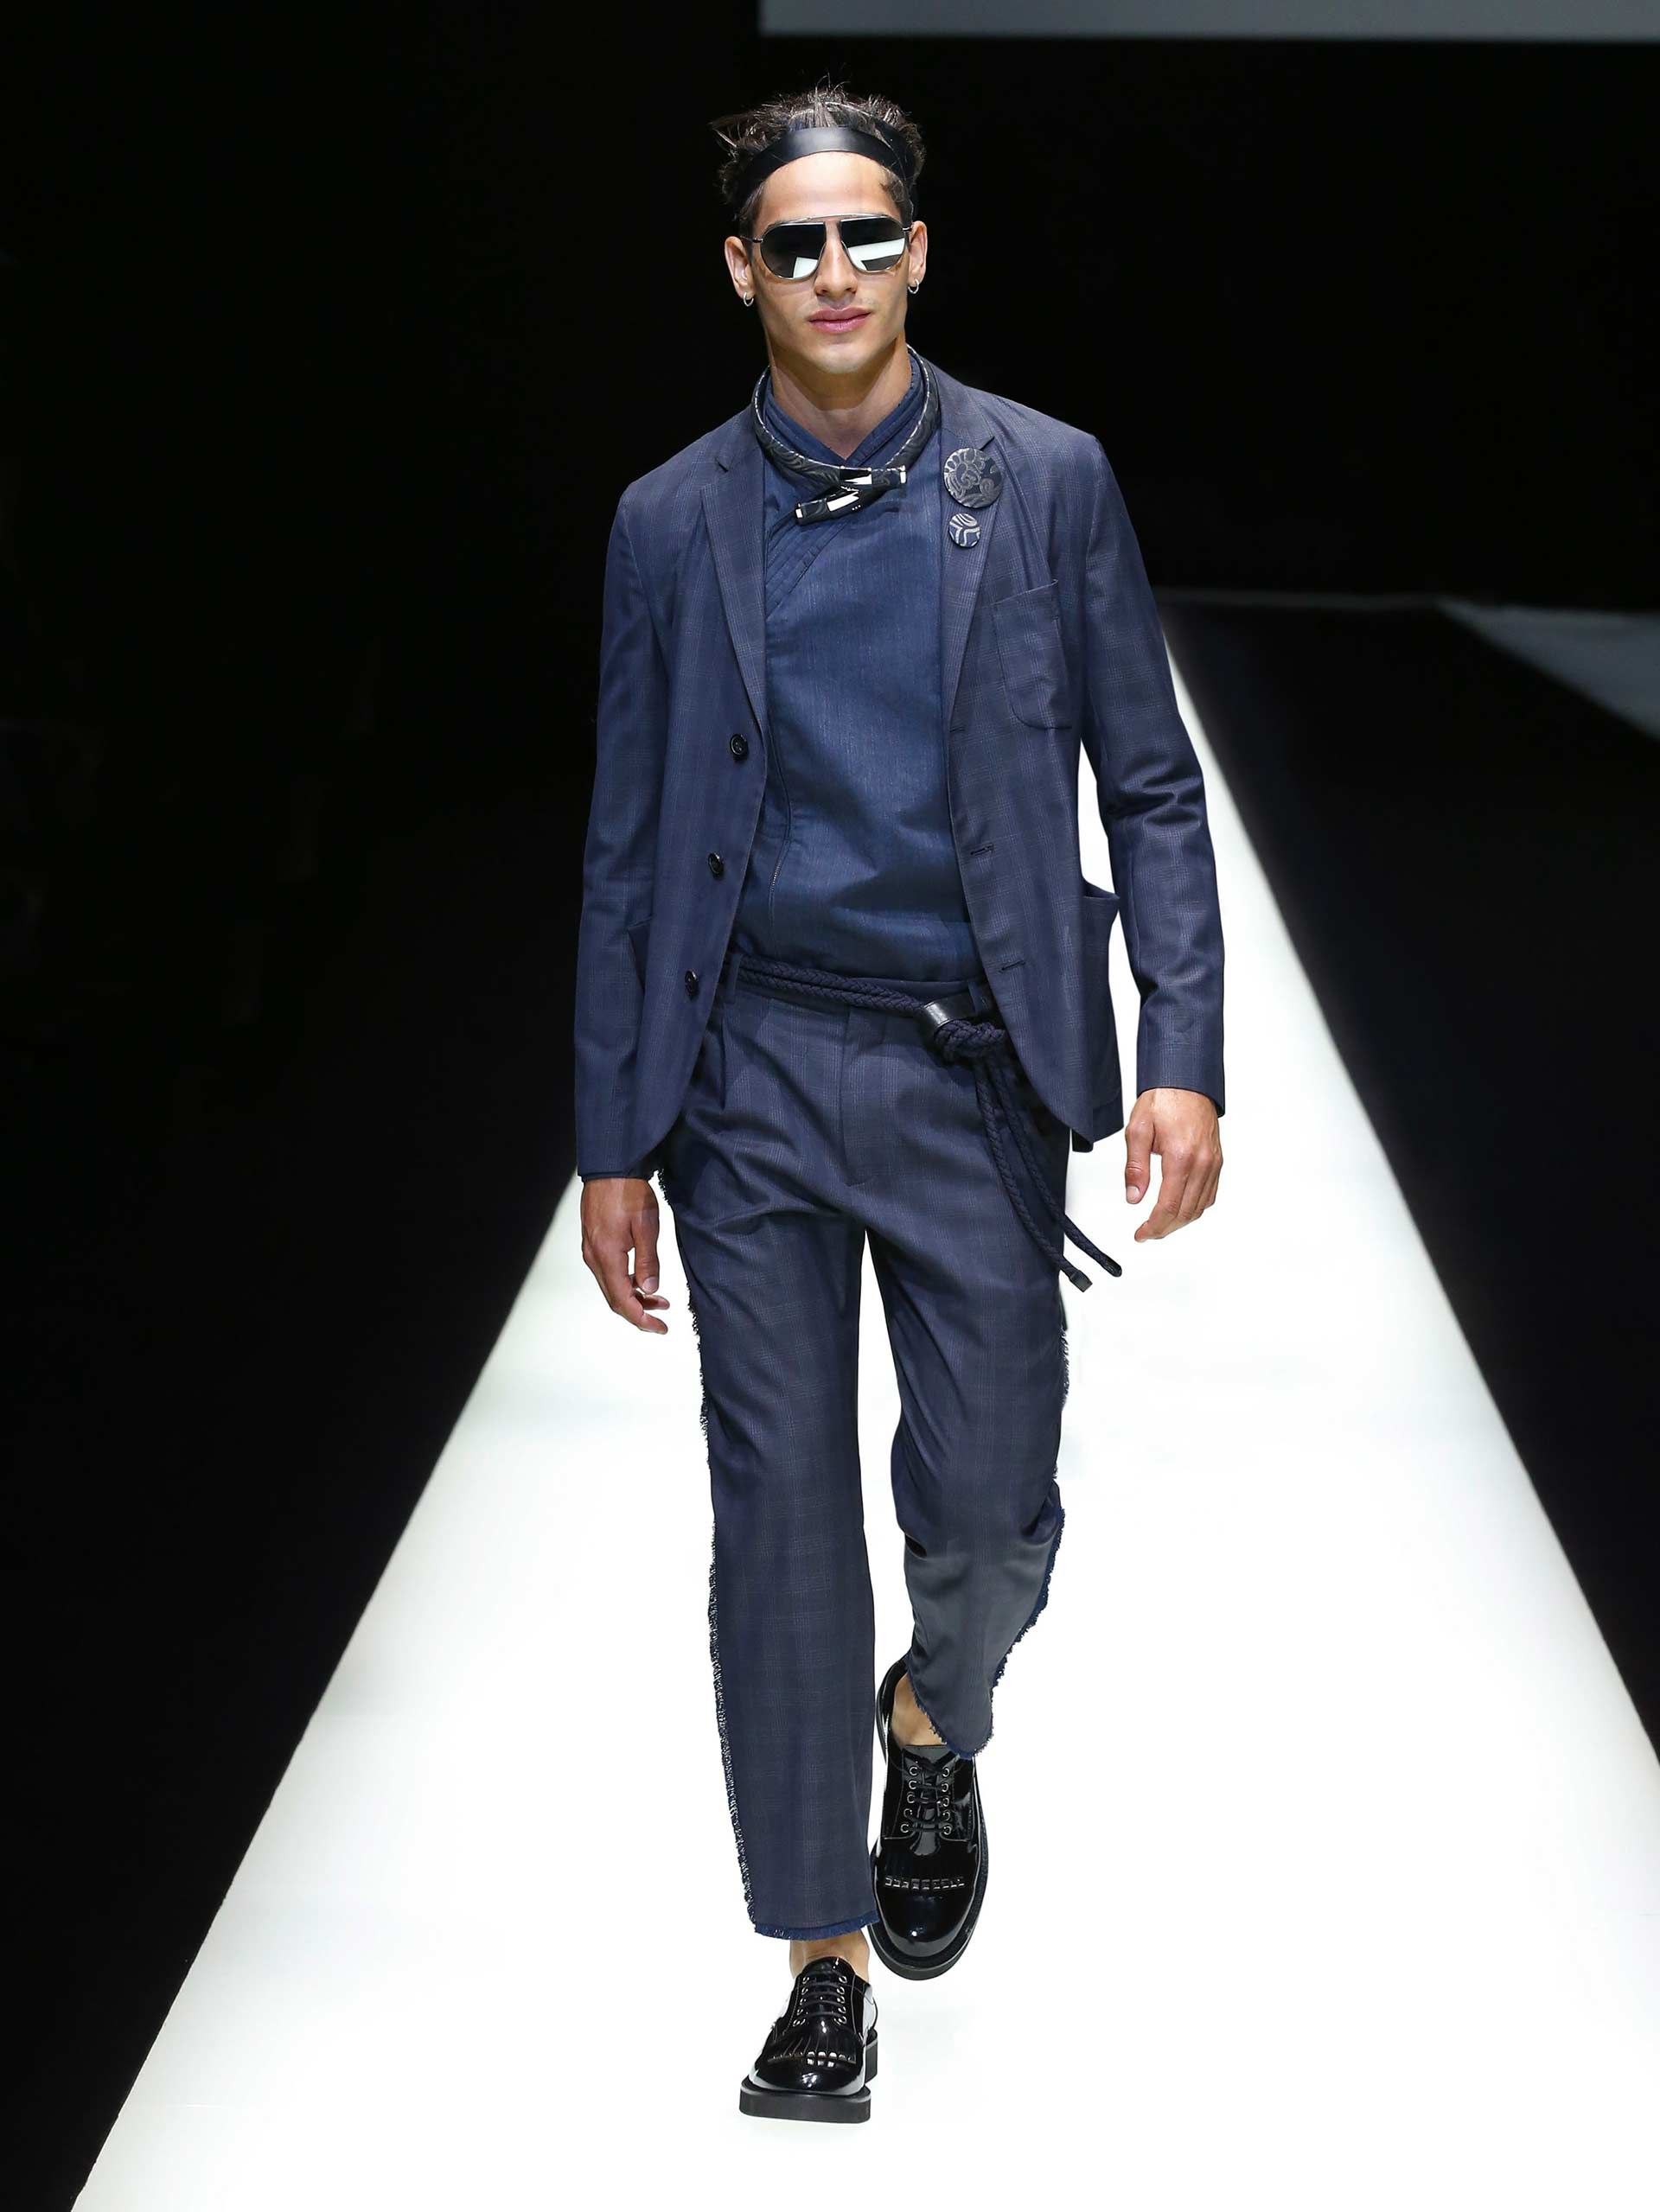 Armani fashion for men